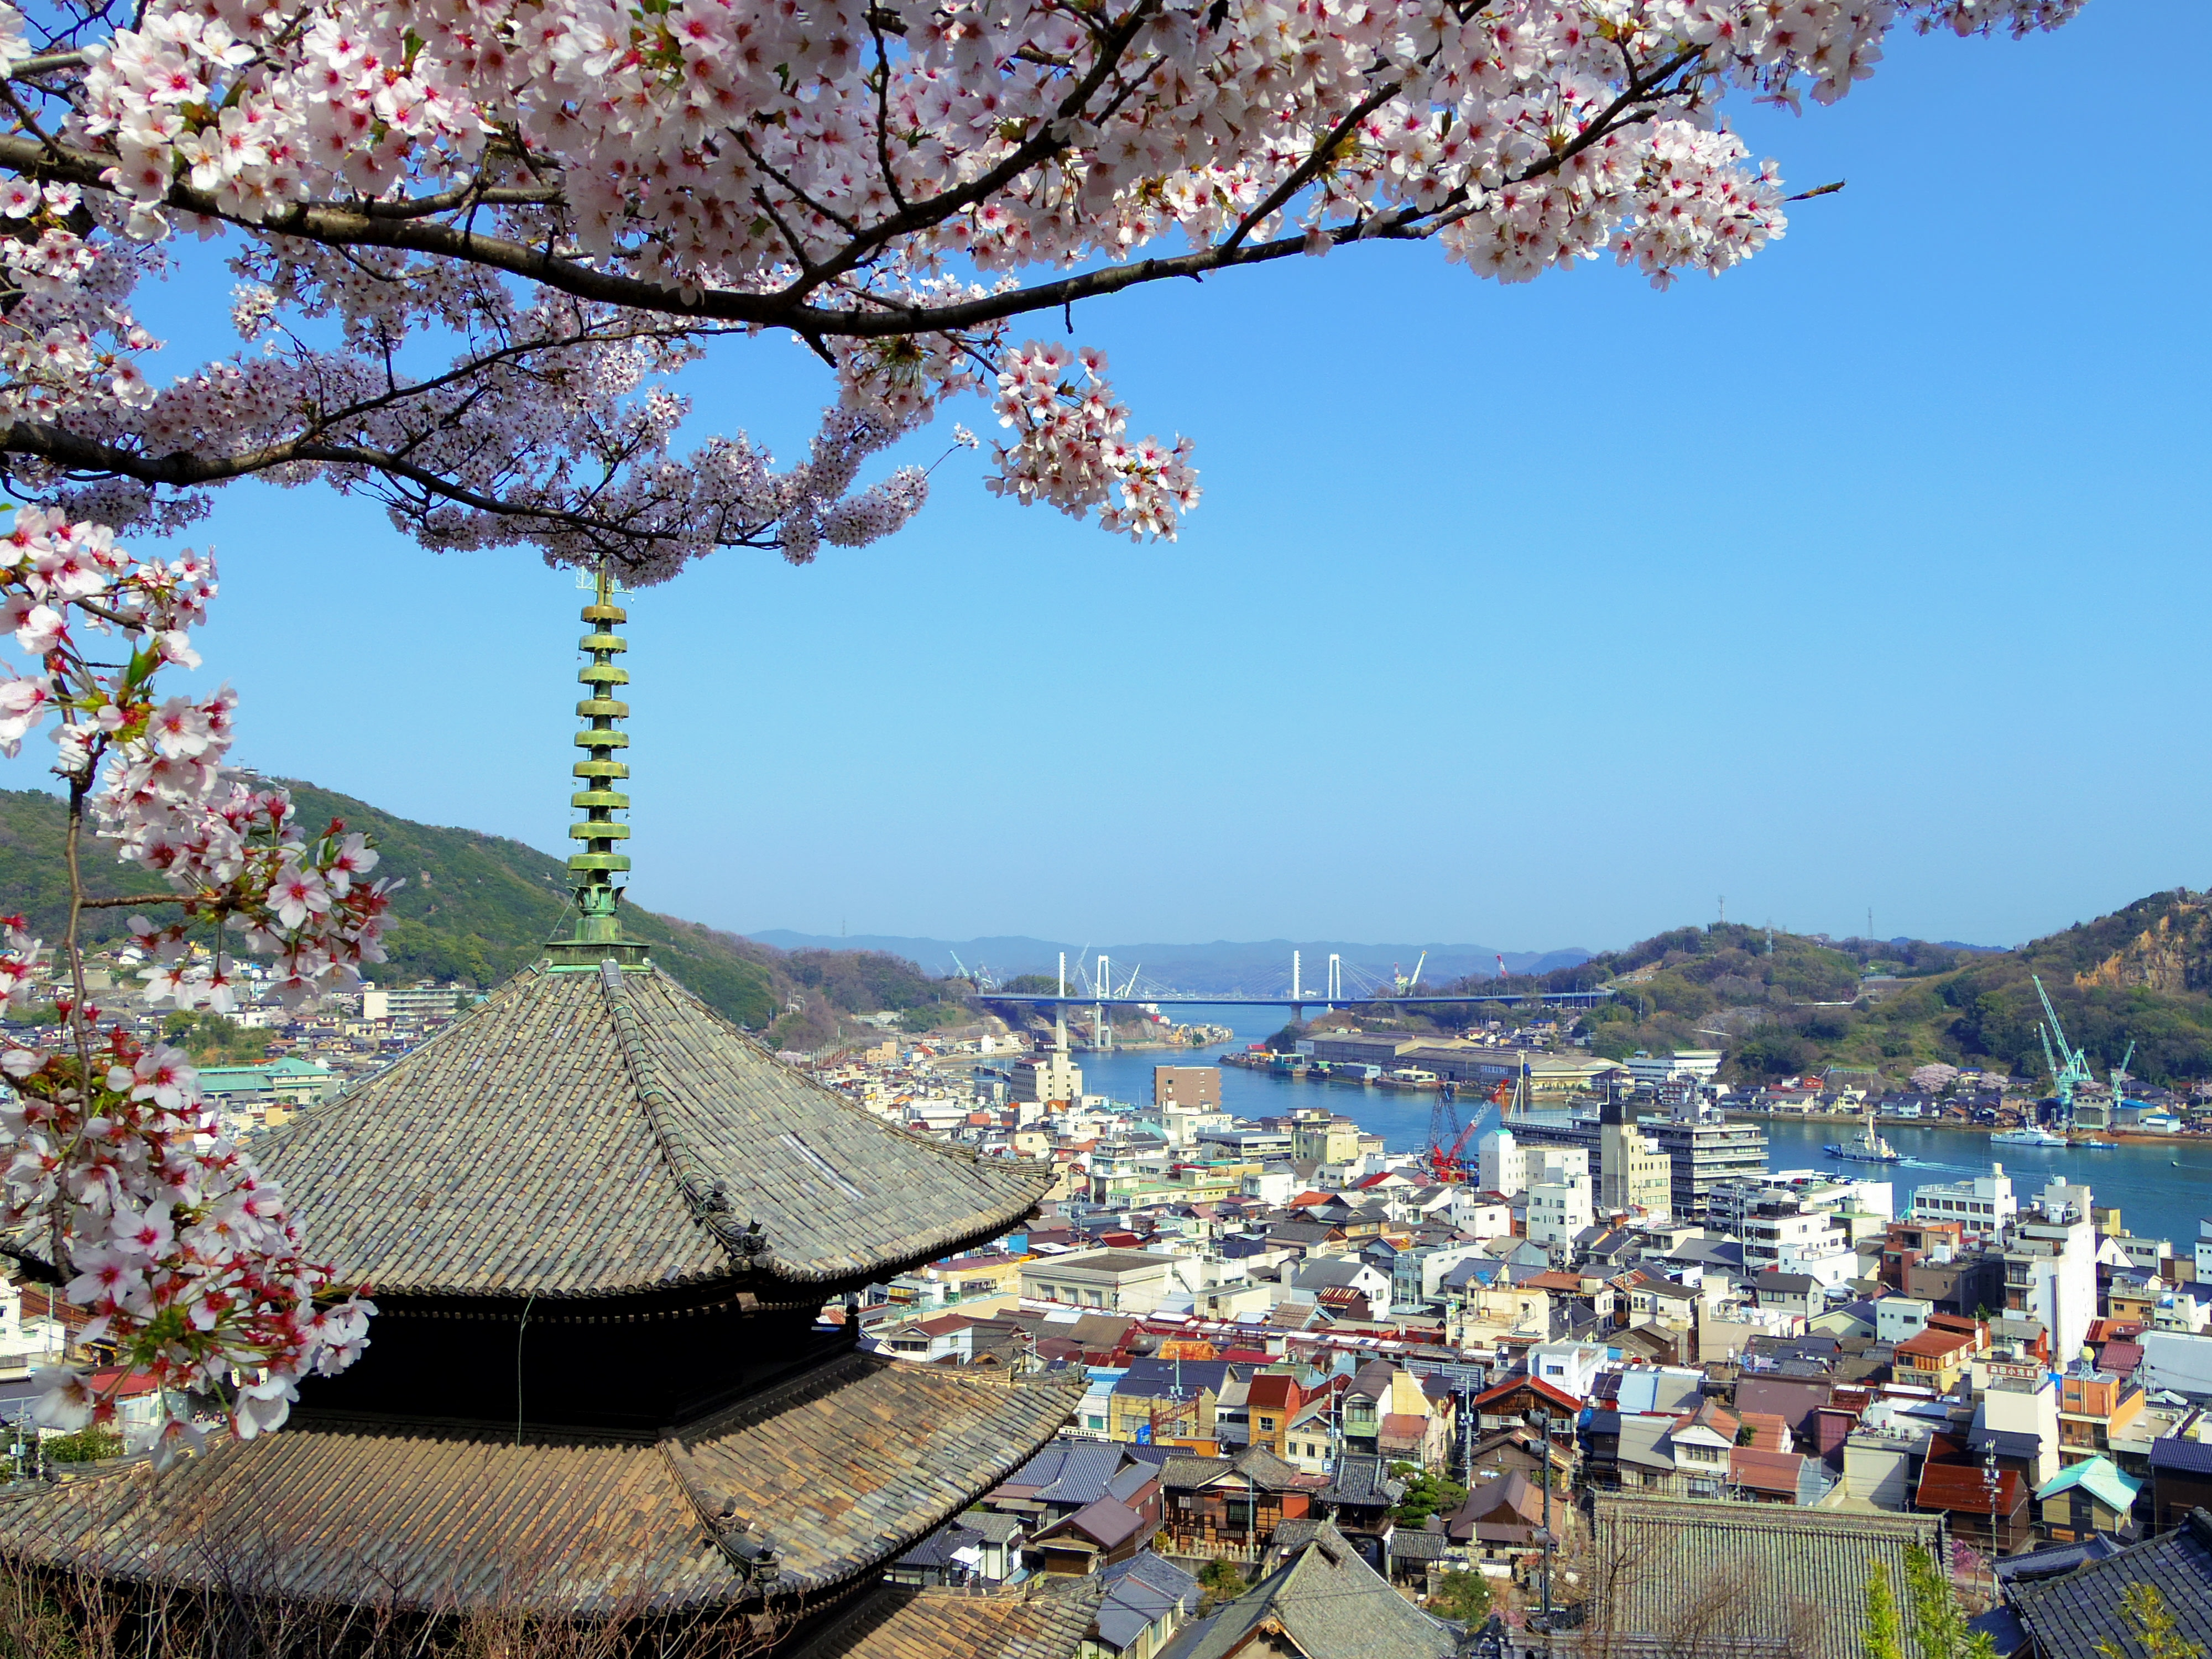 Marvel at the Old Views of Onomichi